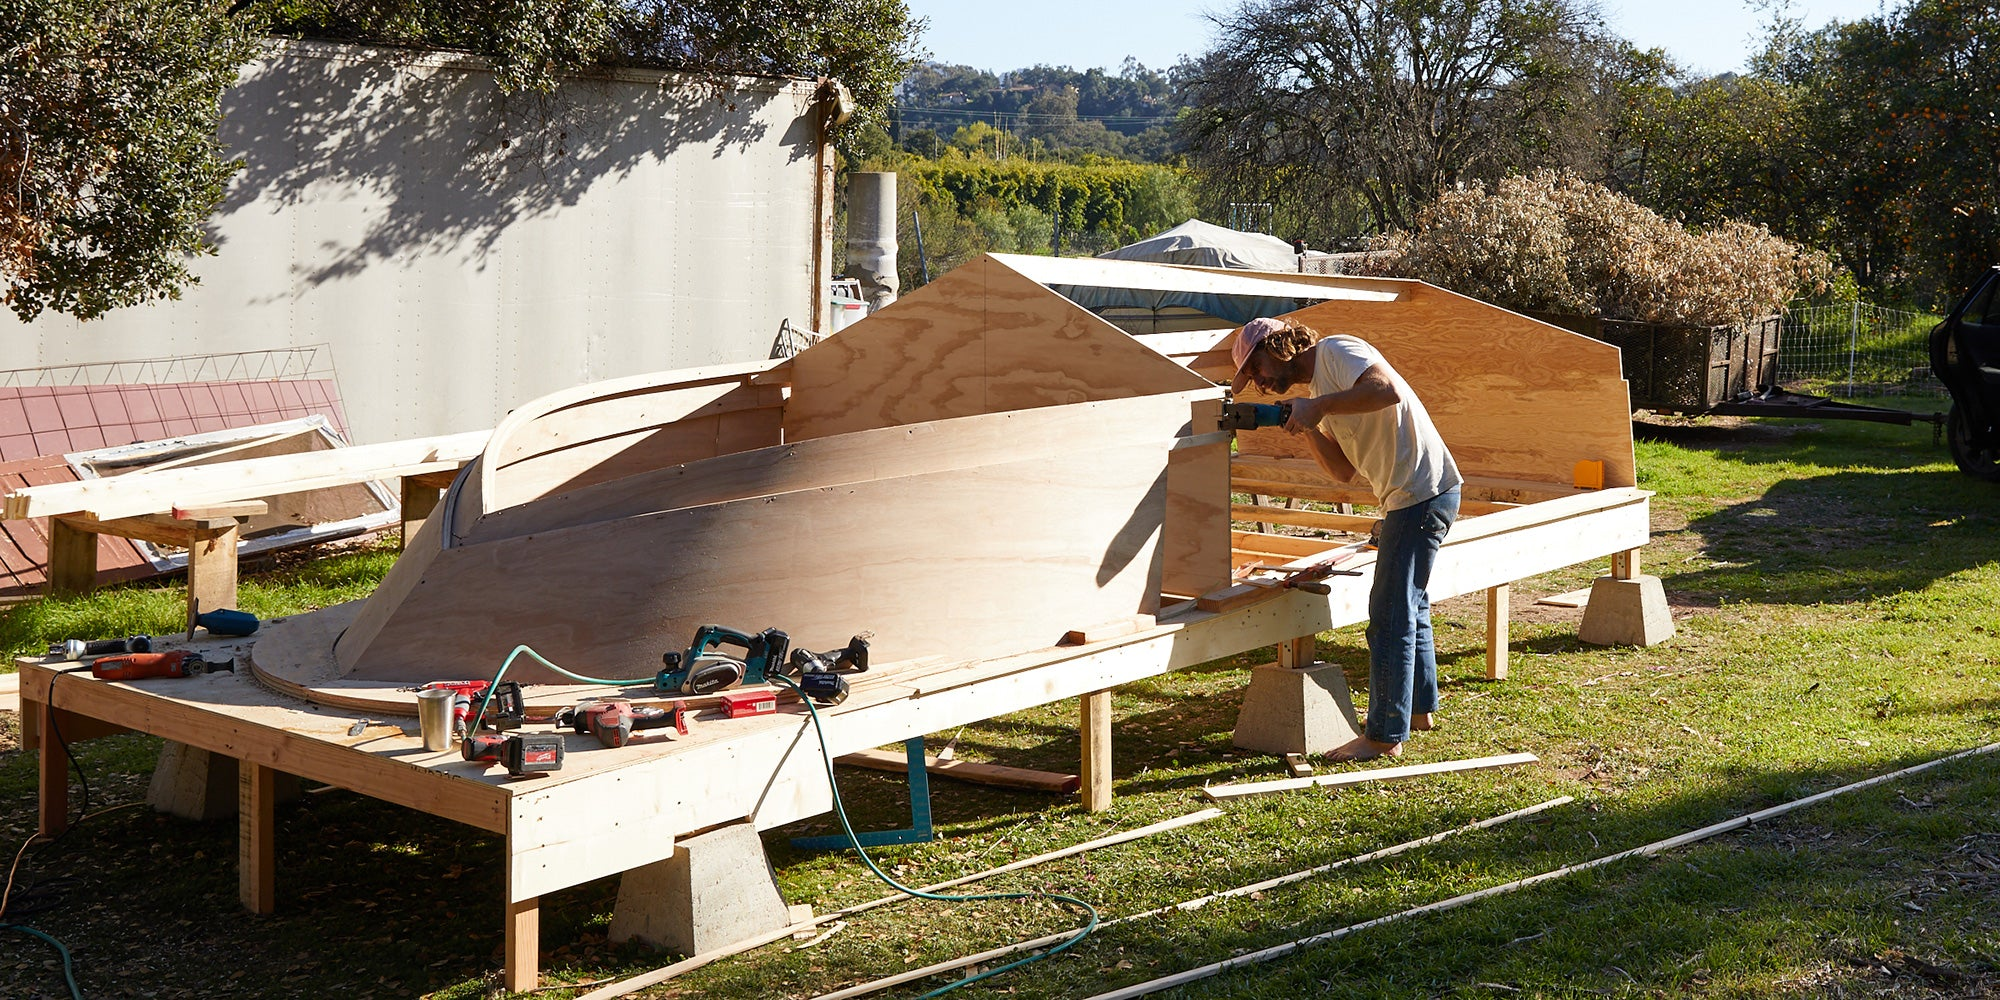 Jay Nelson Builds a Boat